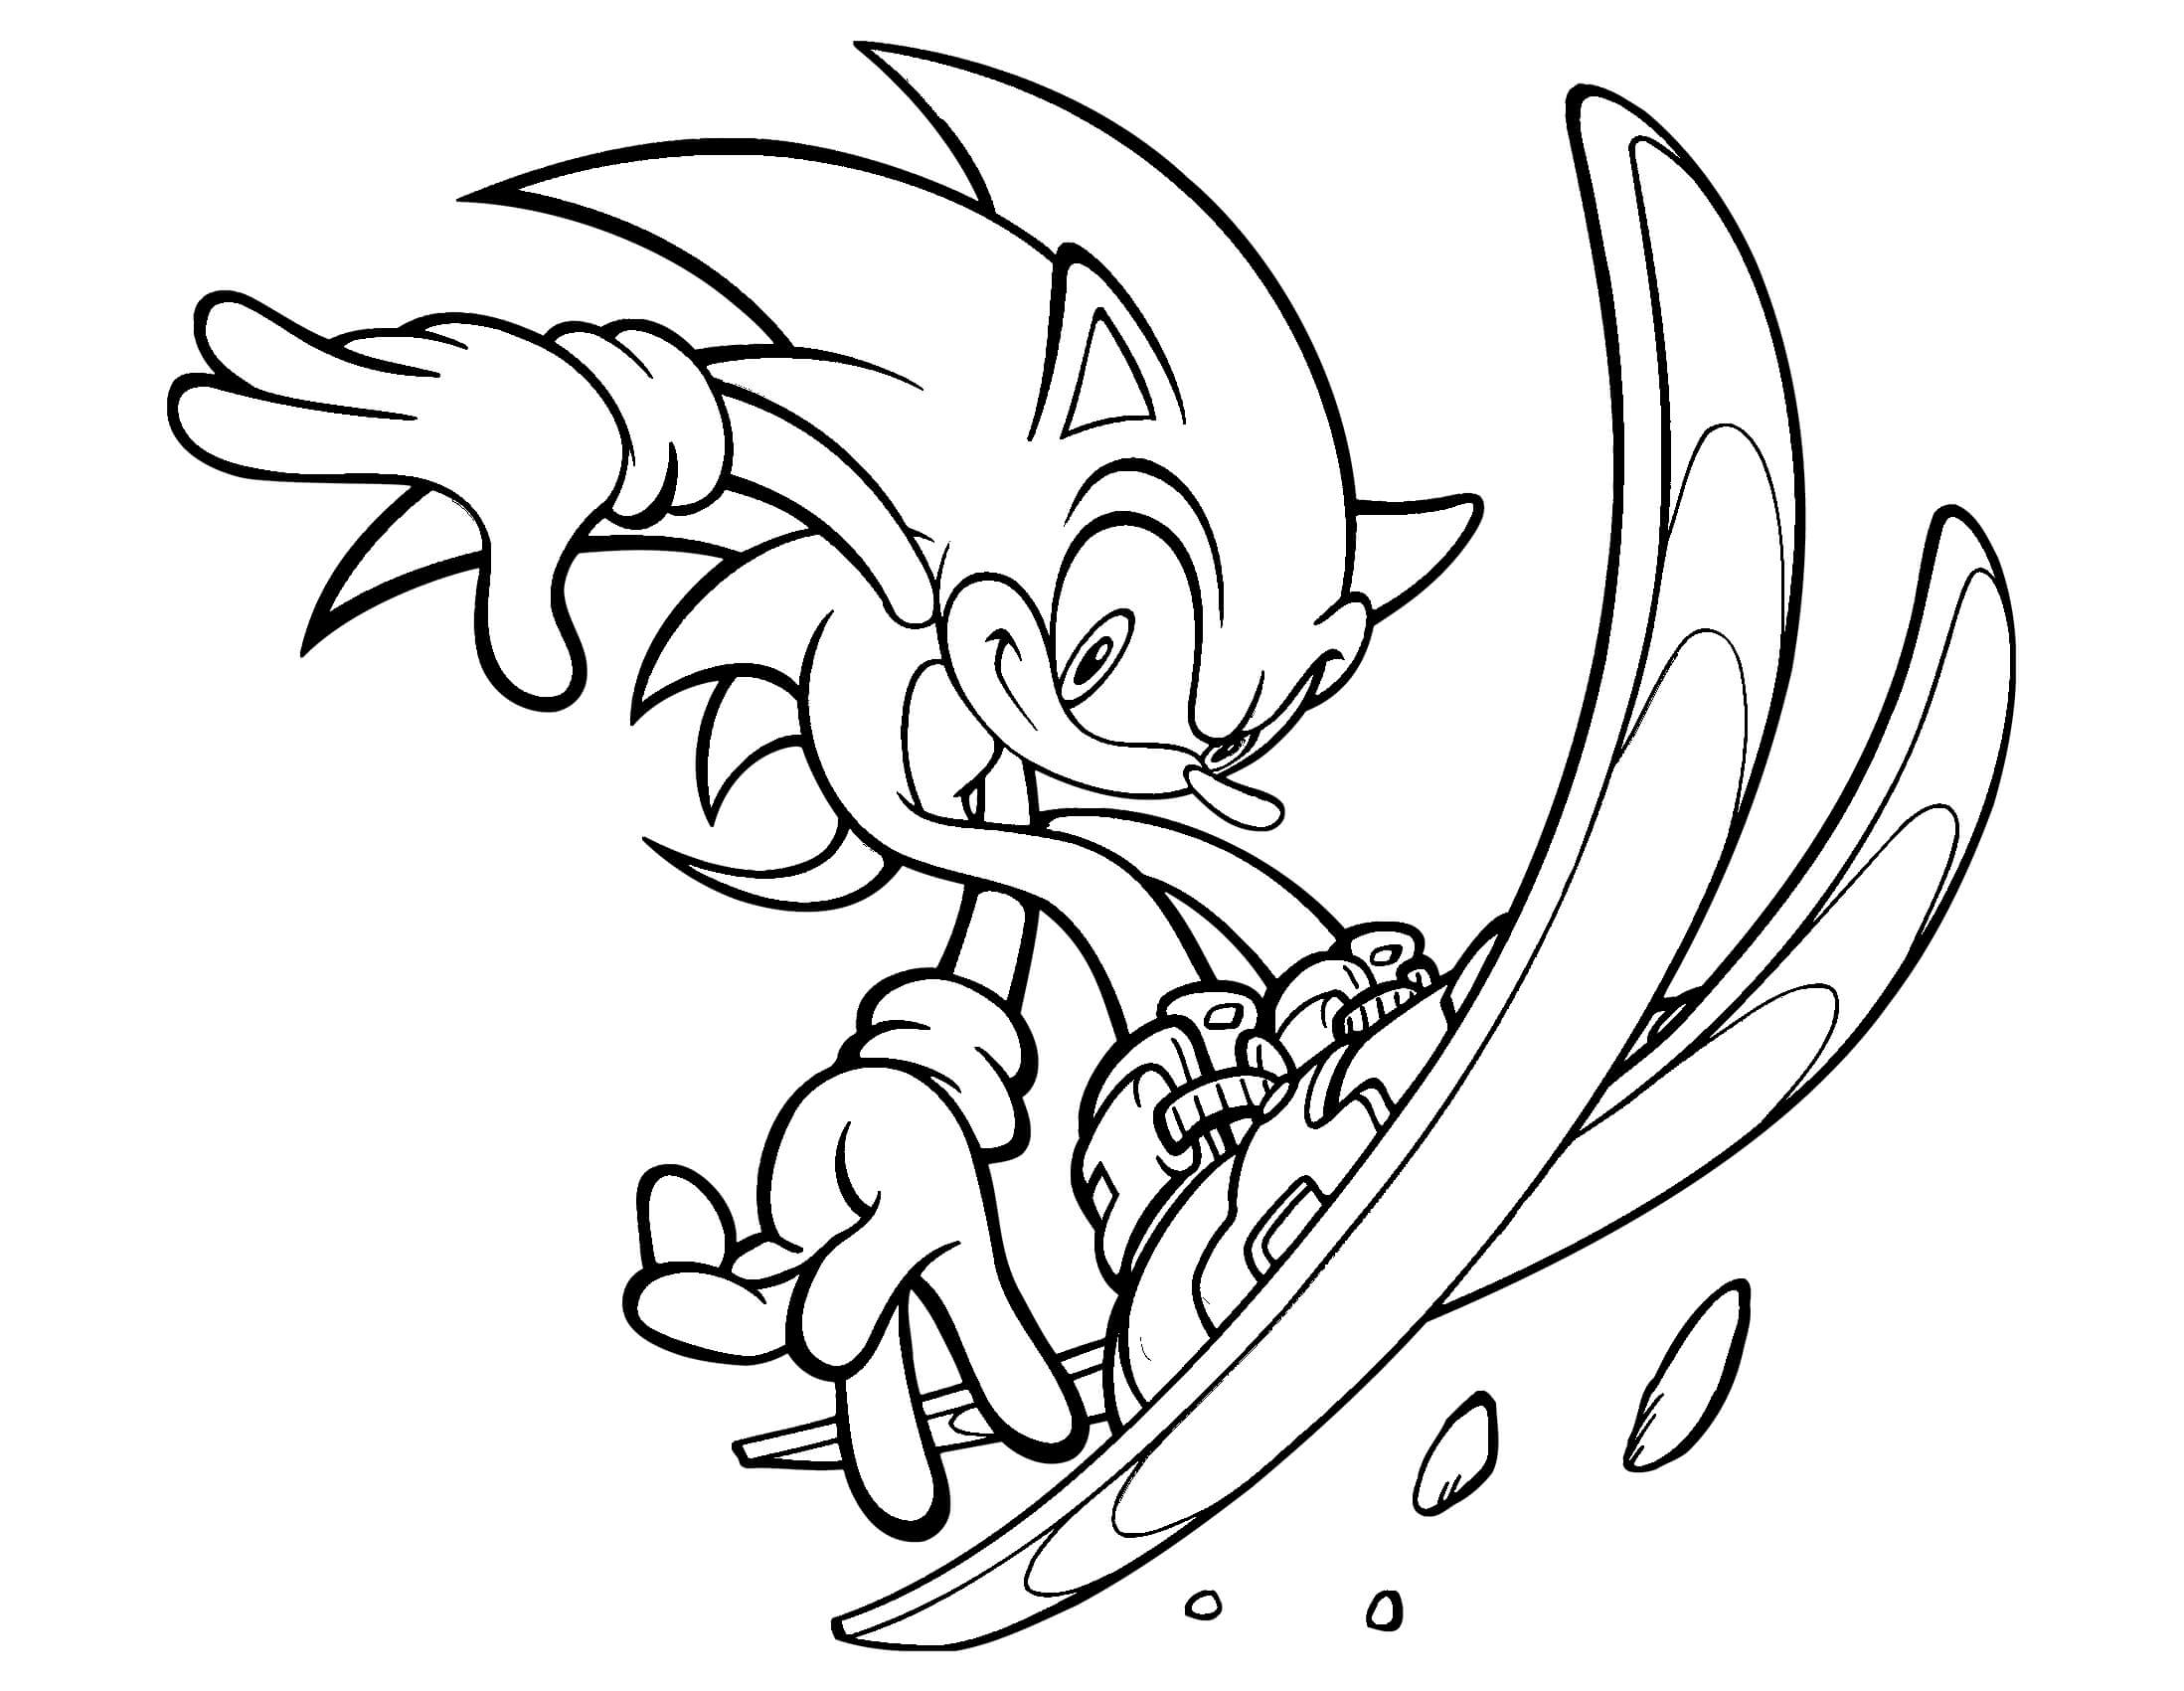 Sonic Running Coloring Pages At GetDrawings.com